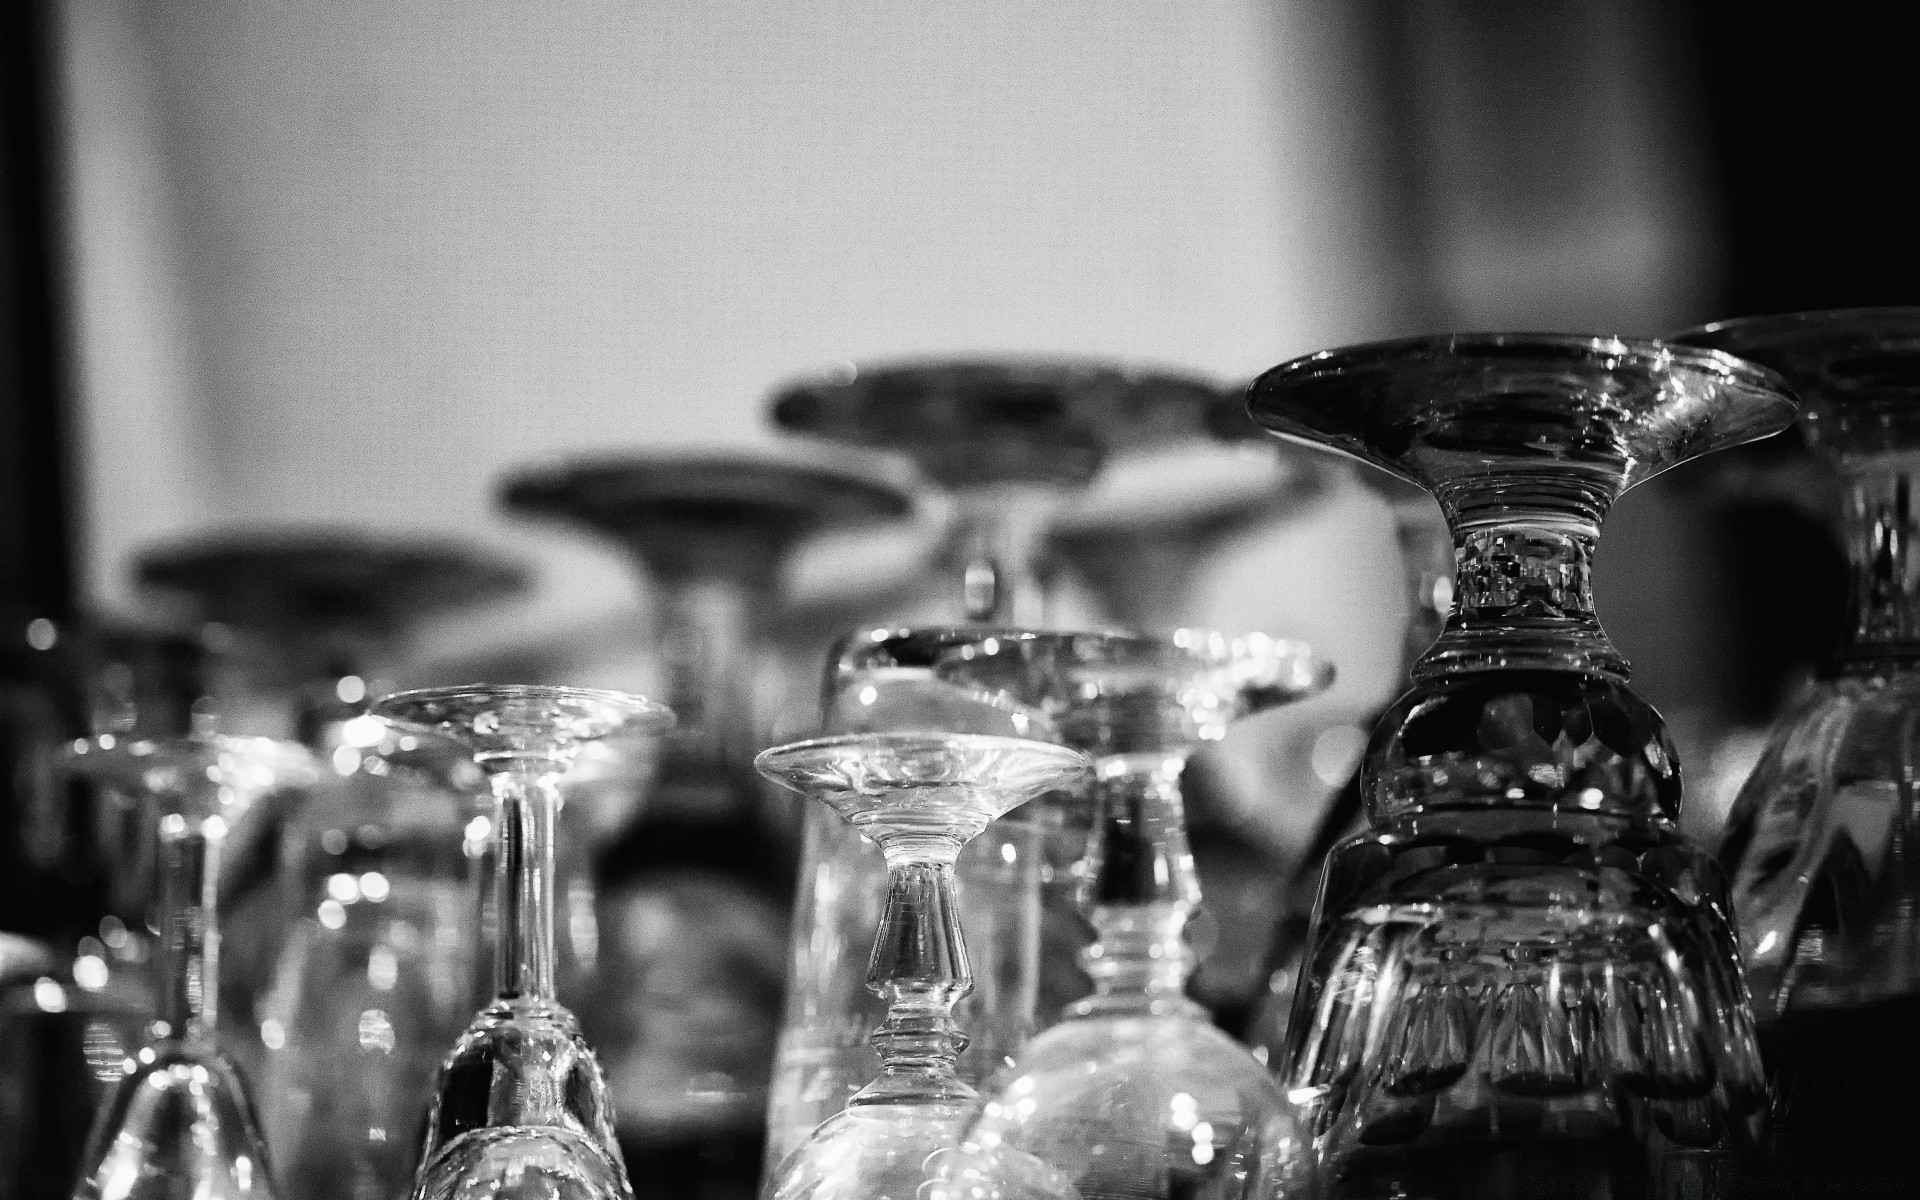 black and white glass monochrome bottle still life reflection glassware drink group